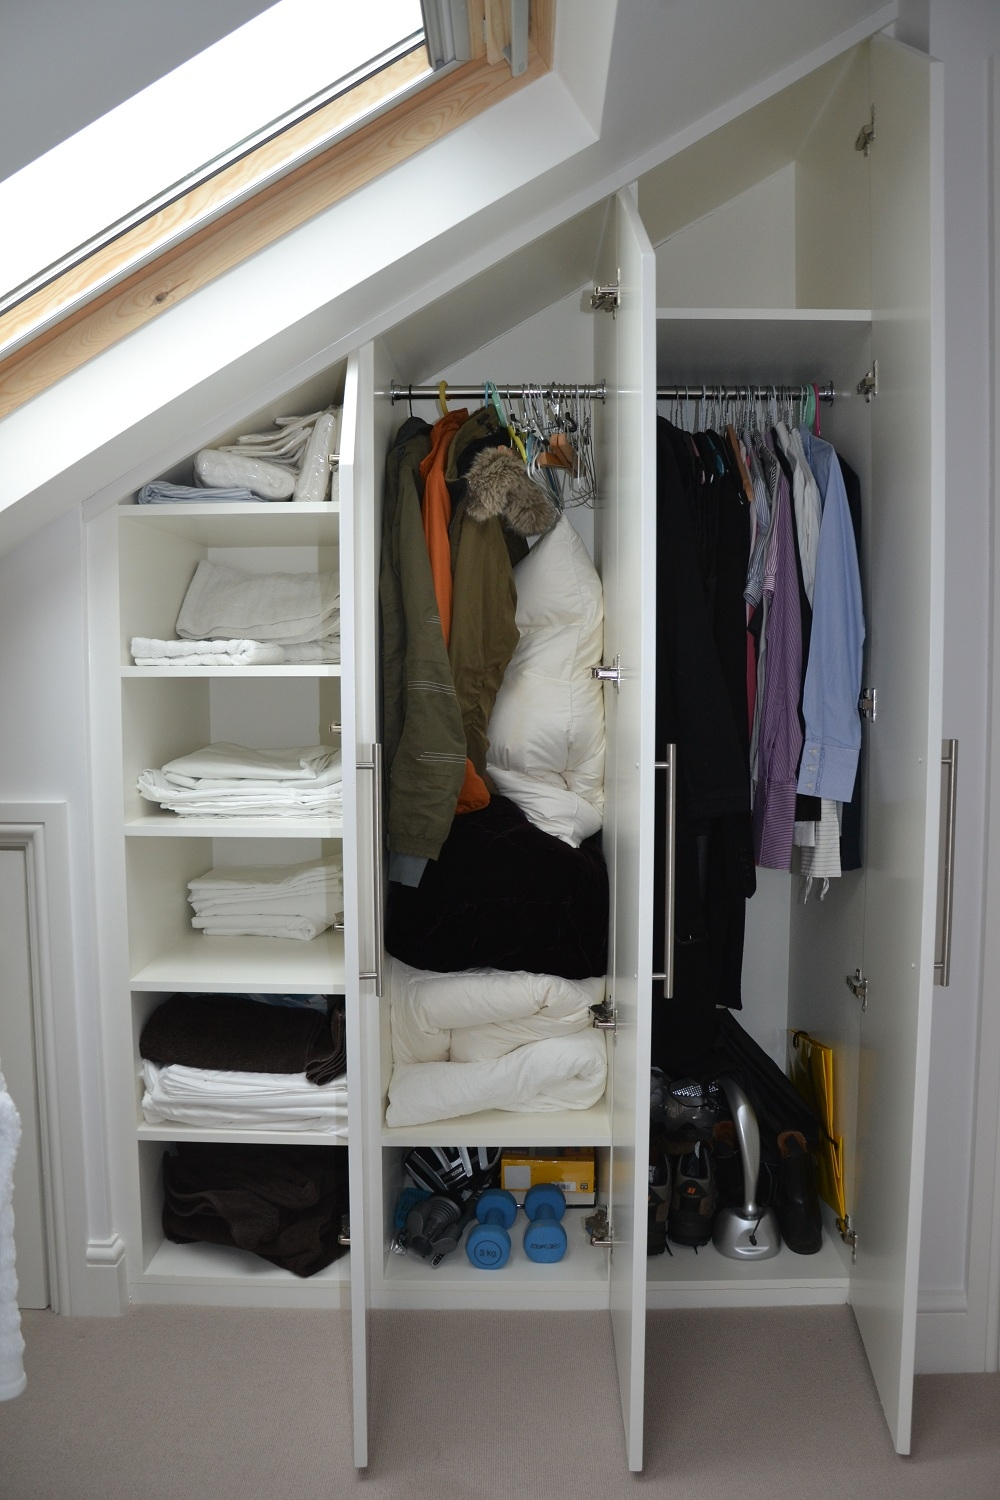 Bespoke Fitted Loft Wardrobes In Fulham South West London Intended For Space Saving Wardrobes (Image 9 of 25)